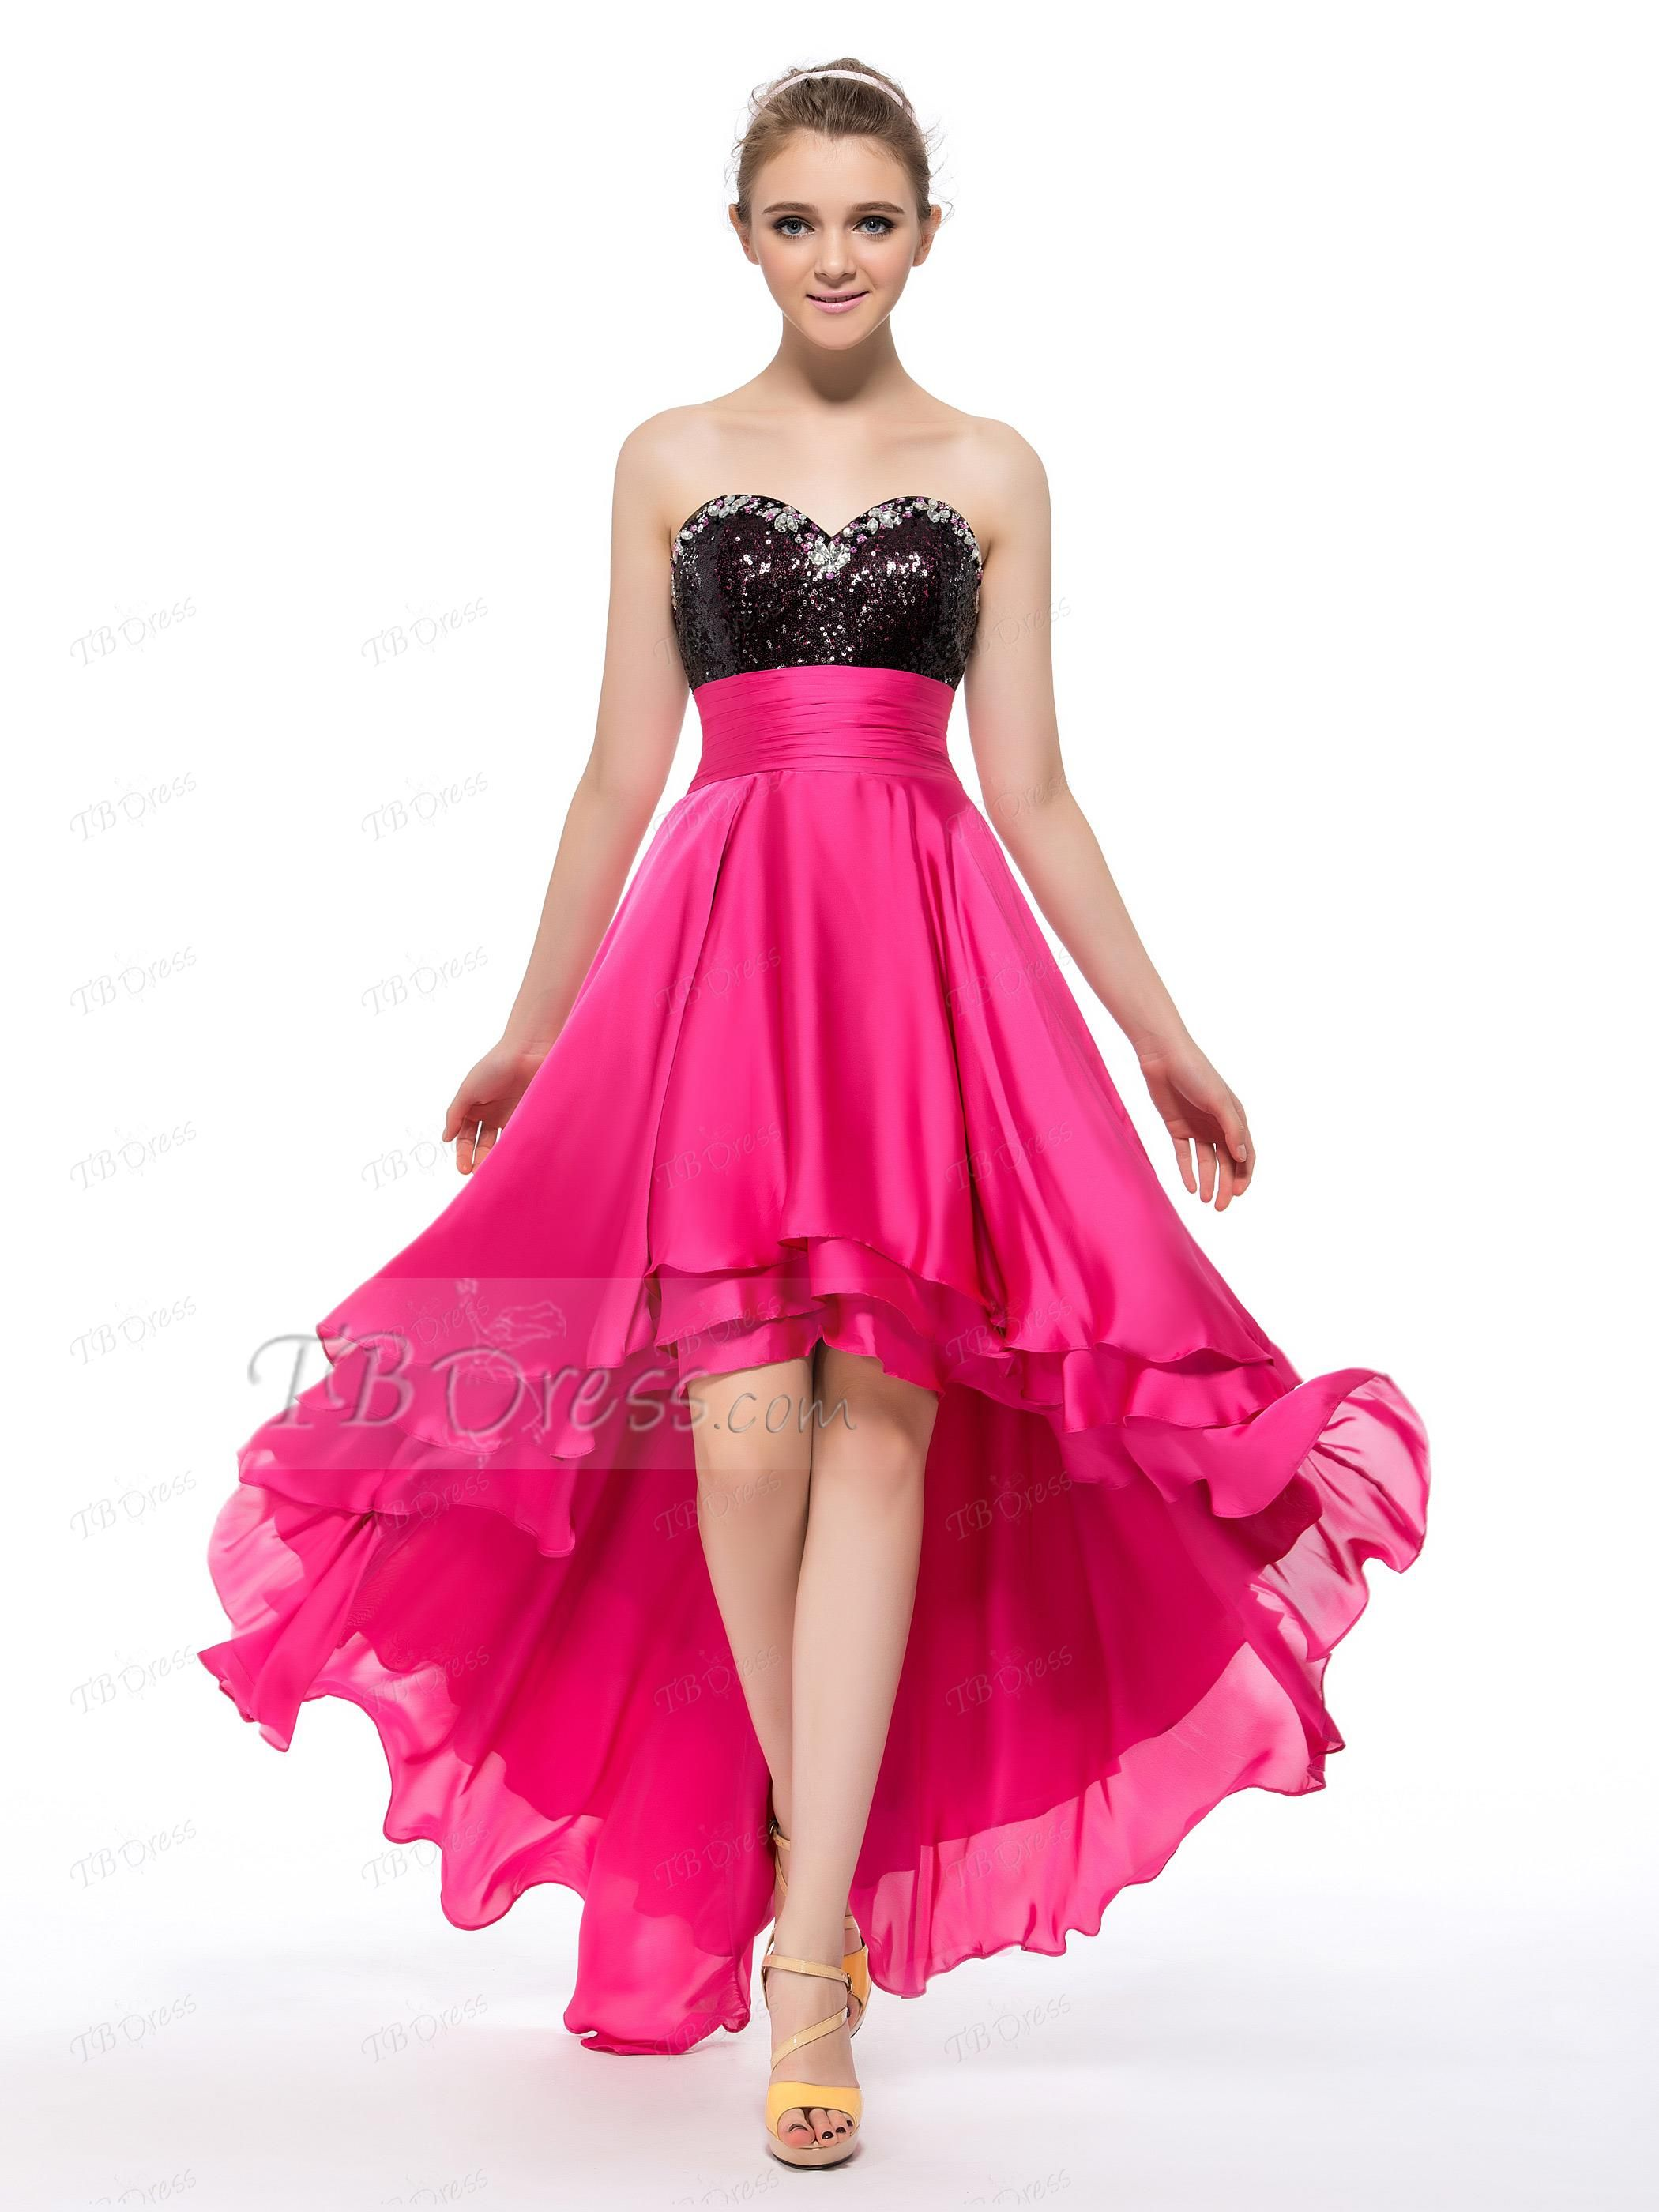 Vestidos TB Dress | Tb dress, Vestidos and Sequin prom dresses